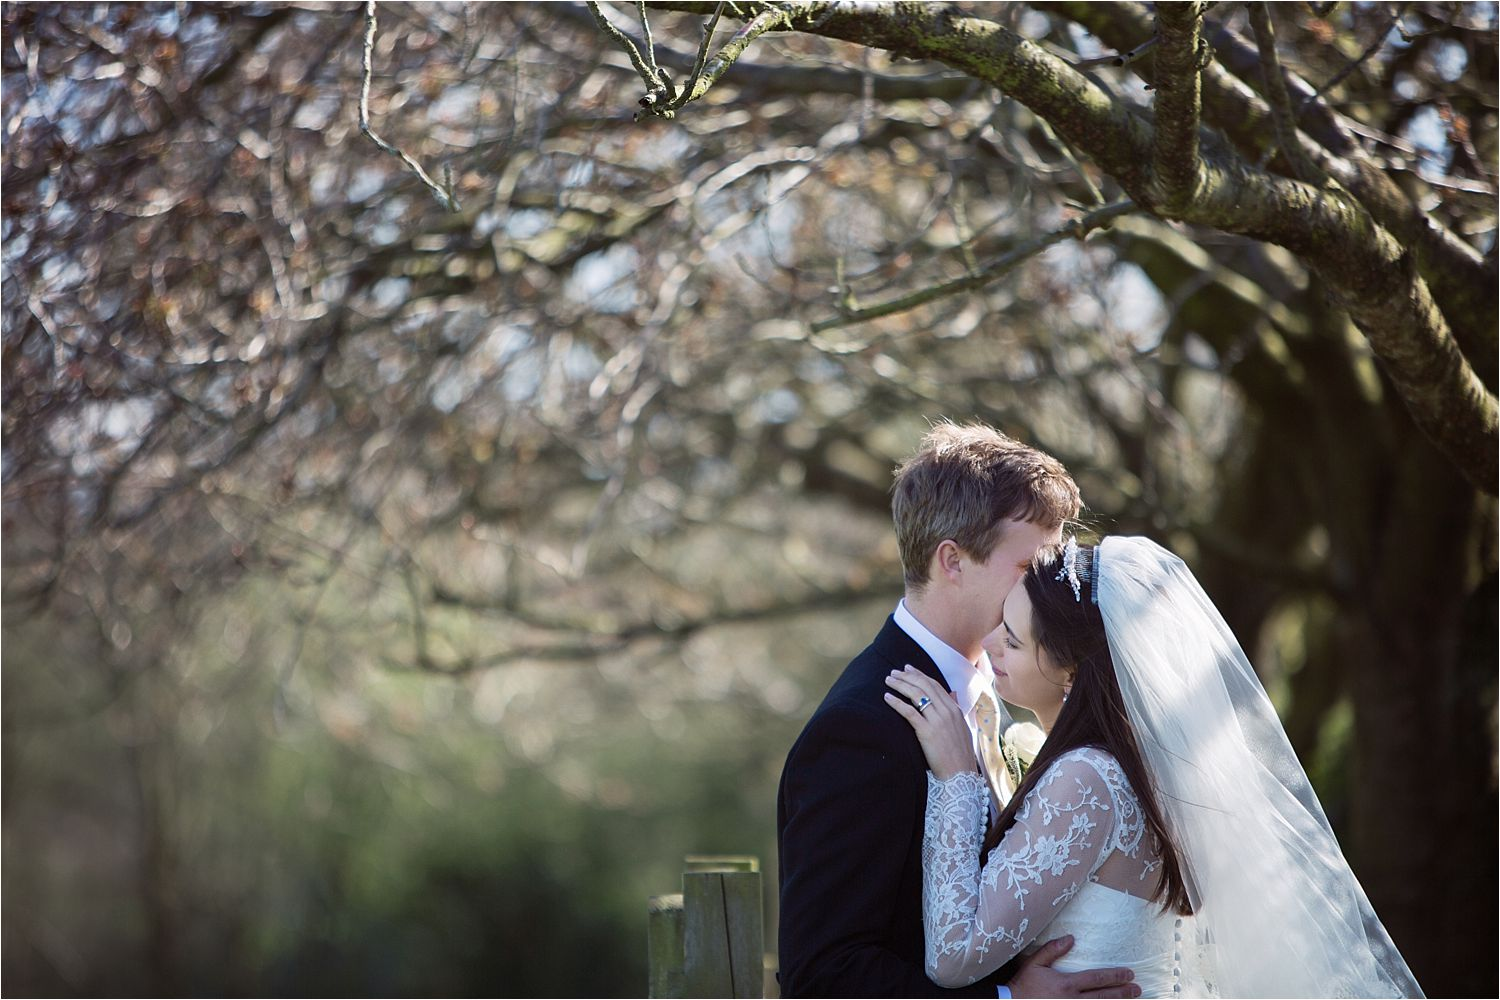 Bride and groom embrace in the gardens of Hilltop Country House